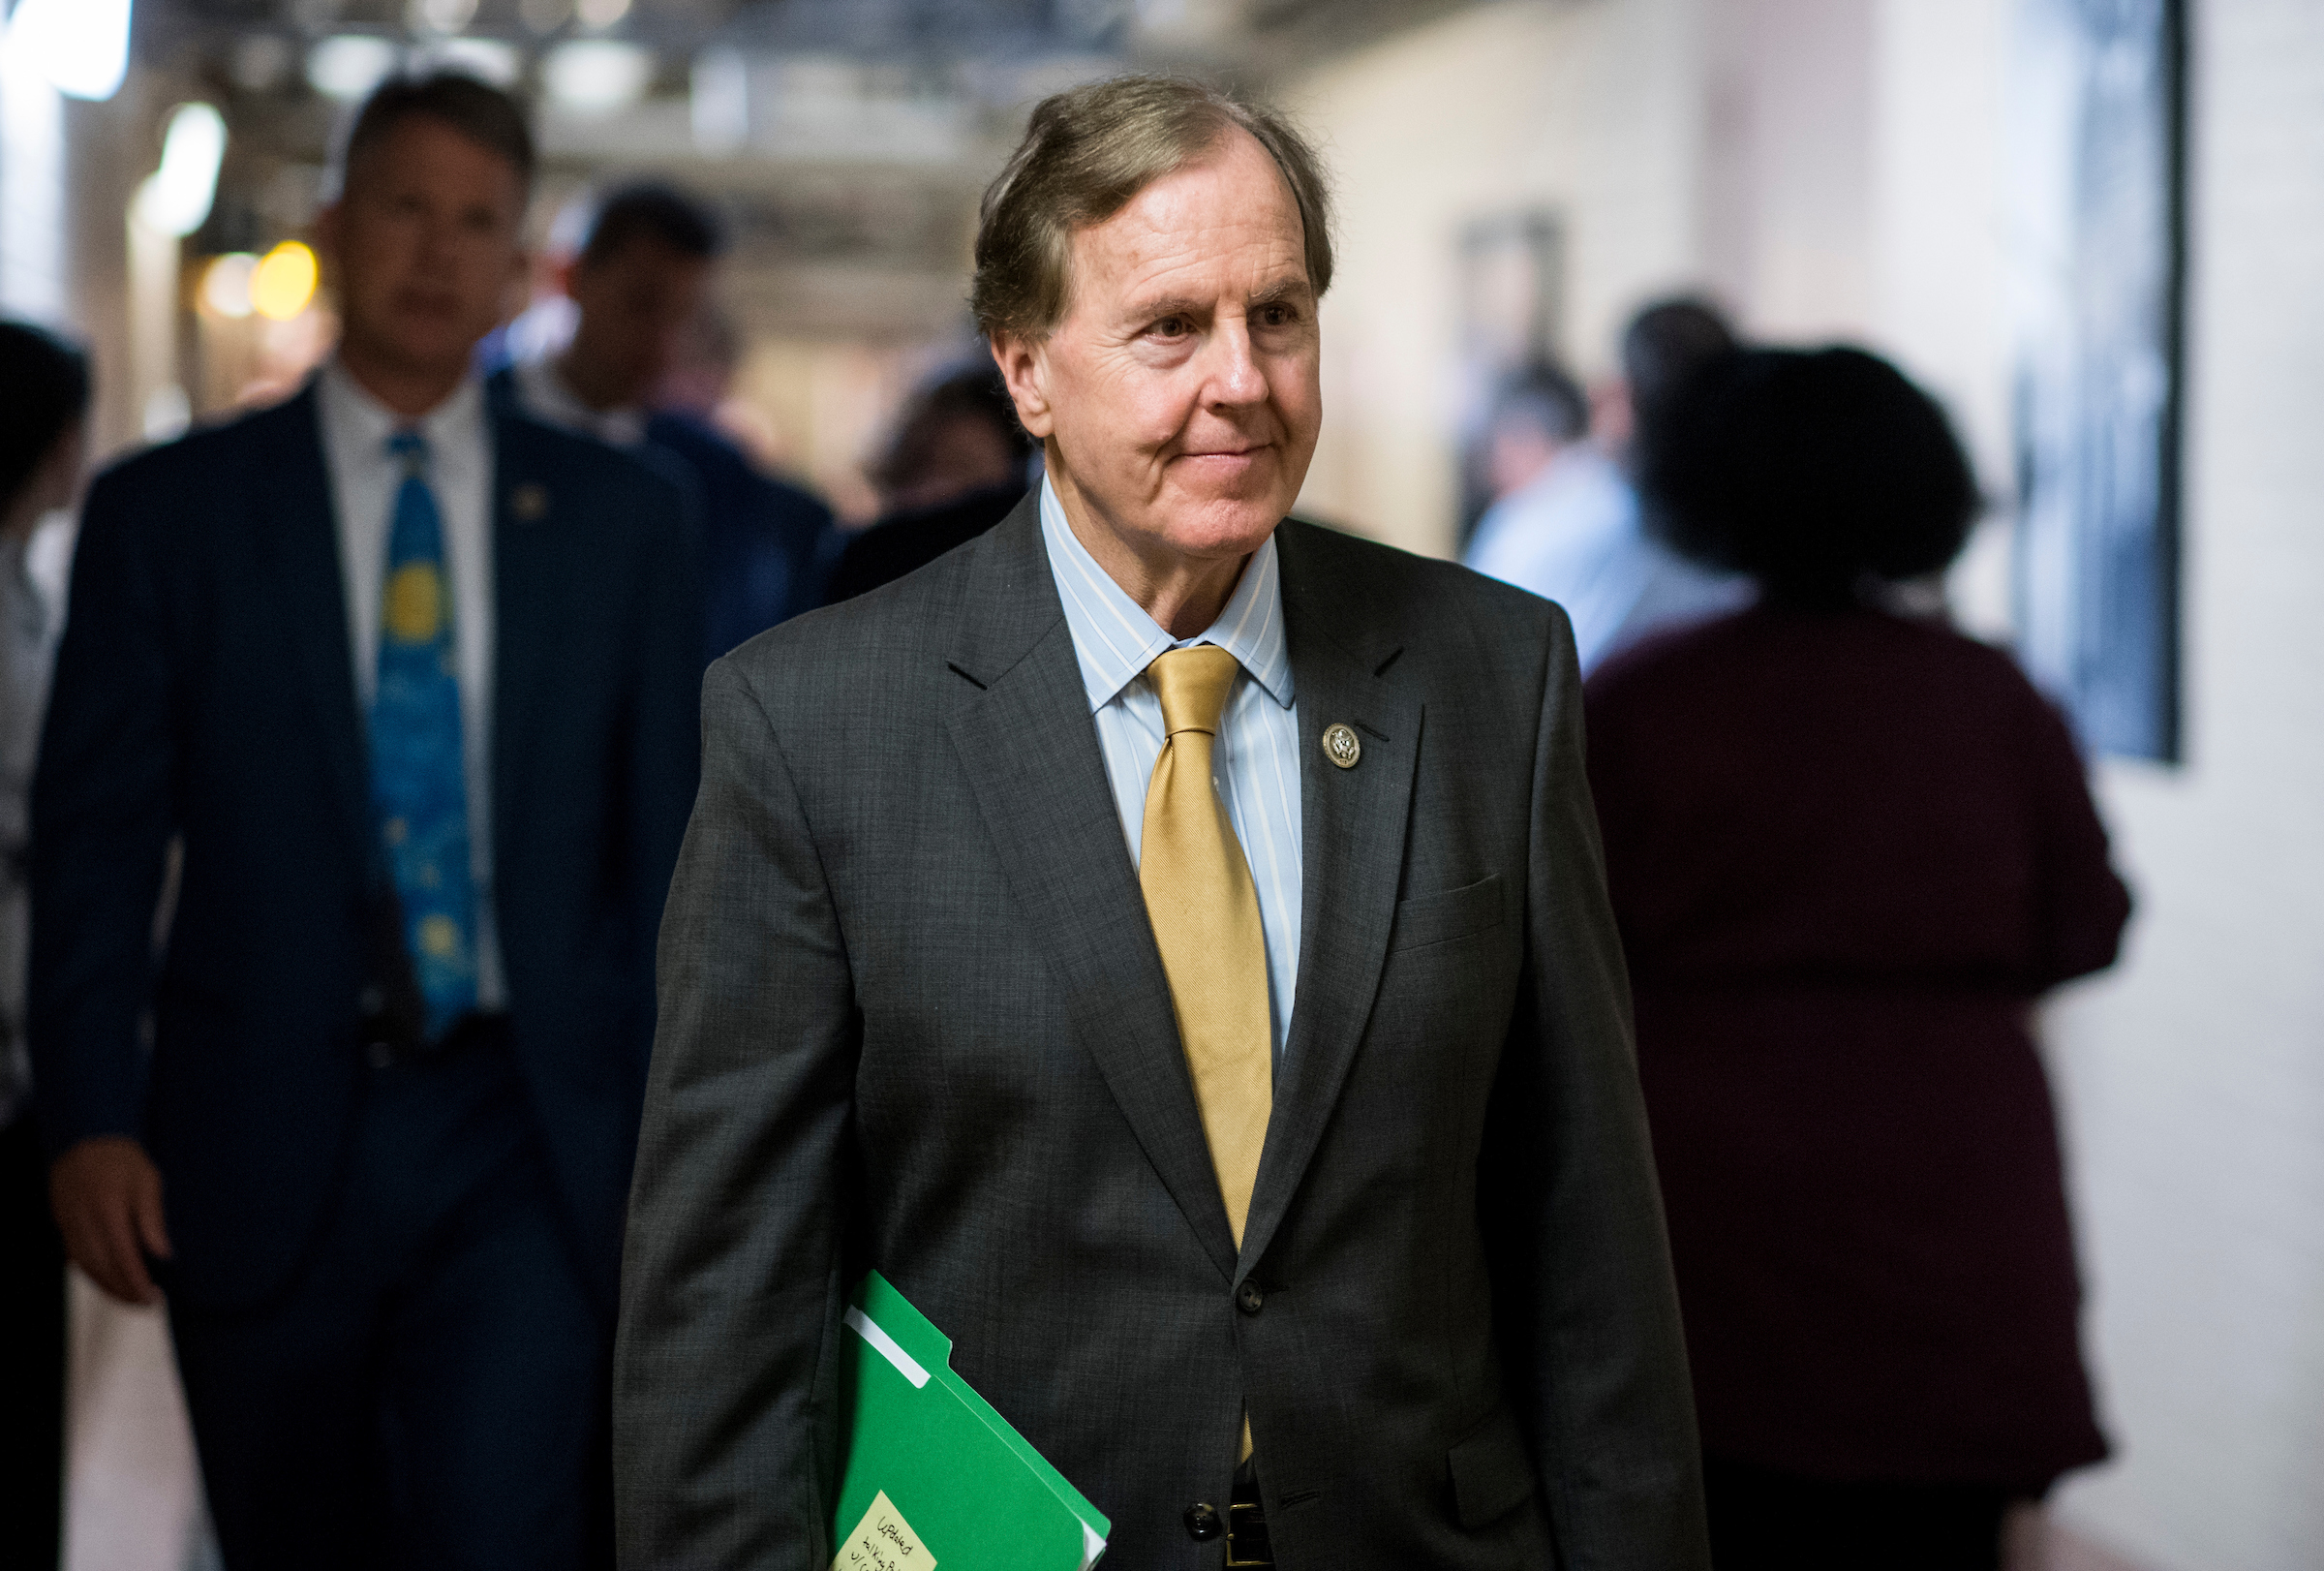 Rep. Robert Pittenger, R-N.C., leaves the House Republican Conference meeting in the basement of the Capitol on Tuesday, oct. 24, 2017. (Photo By Bill Clark/CQ Roll Call)